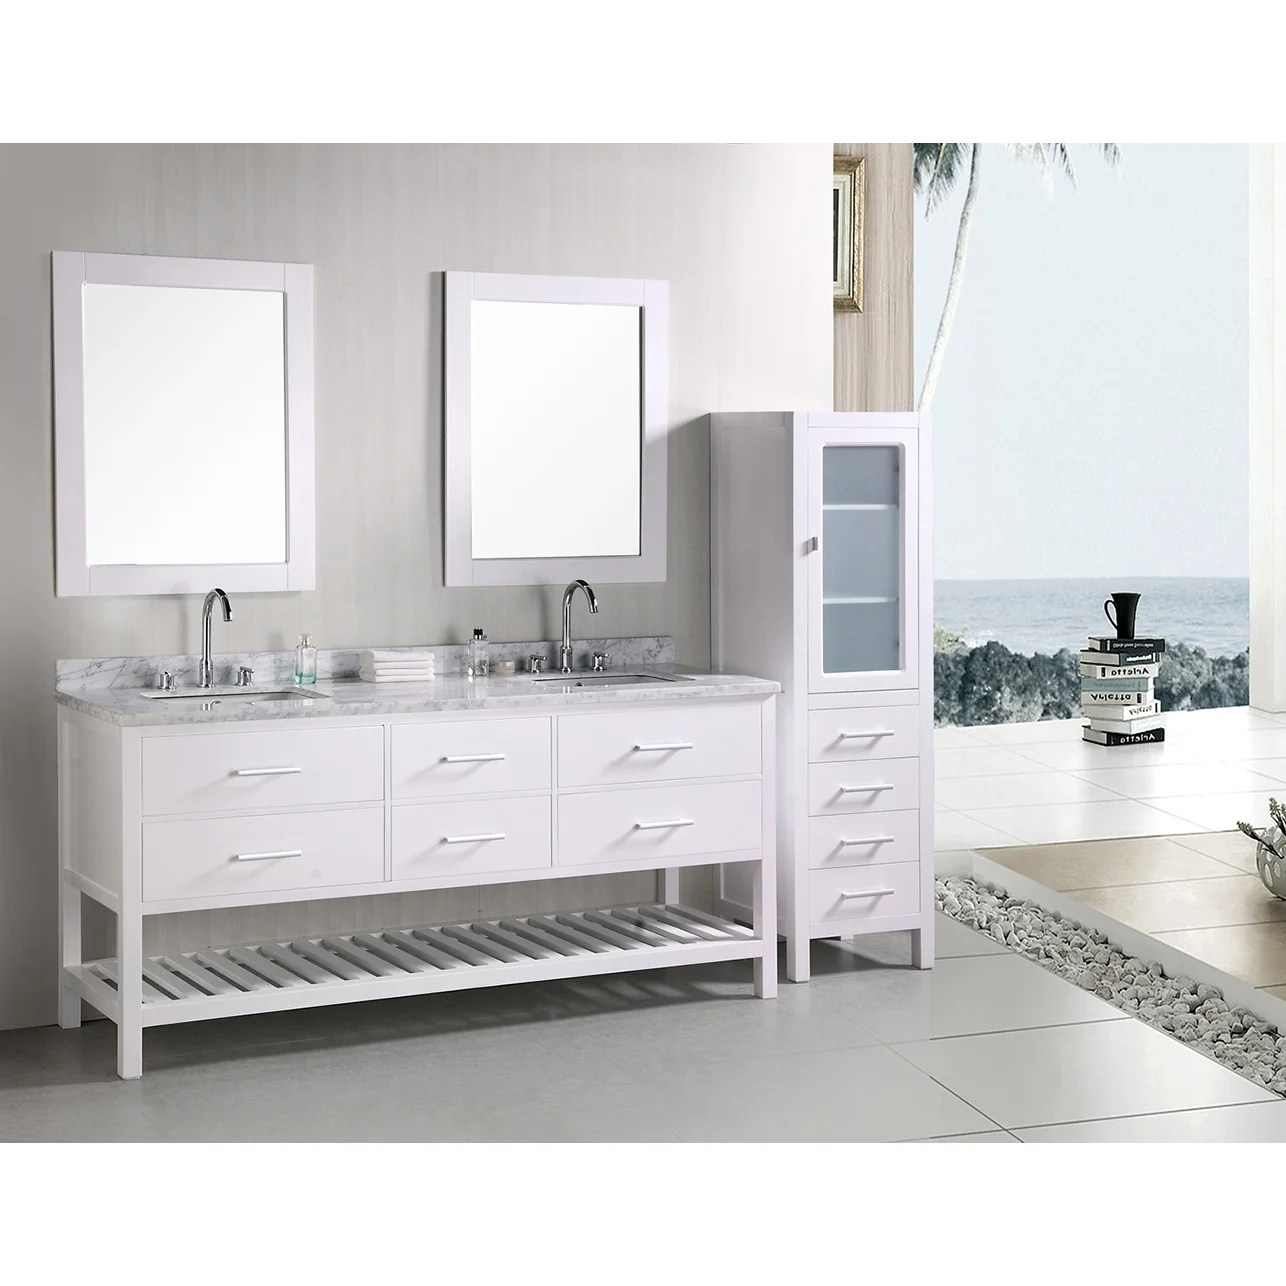 Bathroom Vanity 72 Double Sink Design Element London 72 Inch Double Sink Bathroom Vanity Set